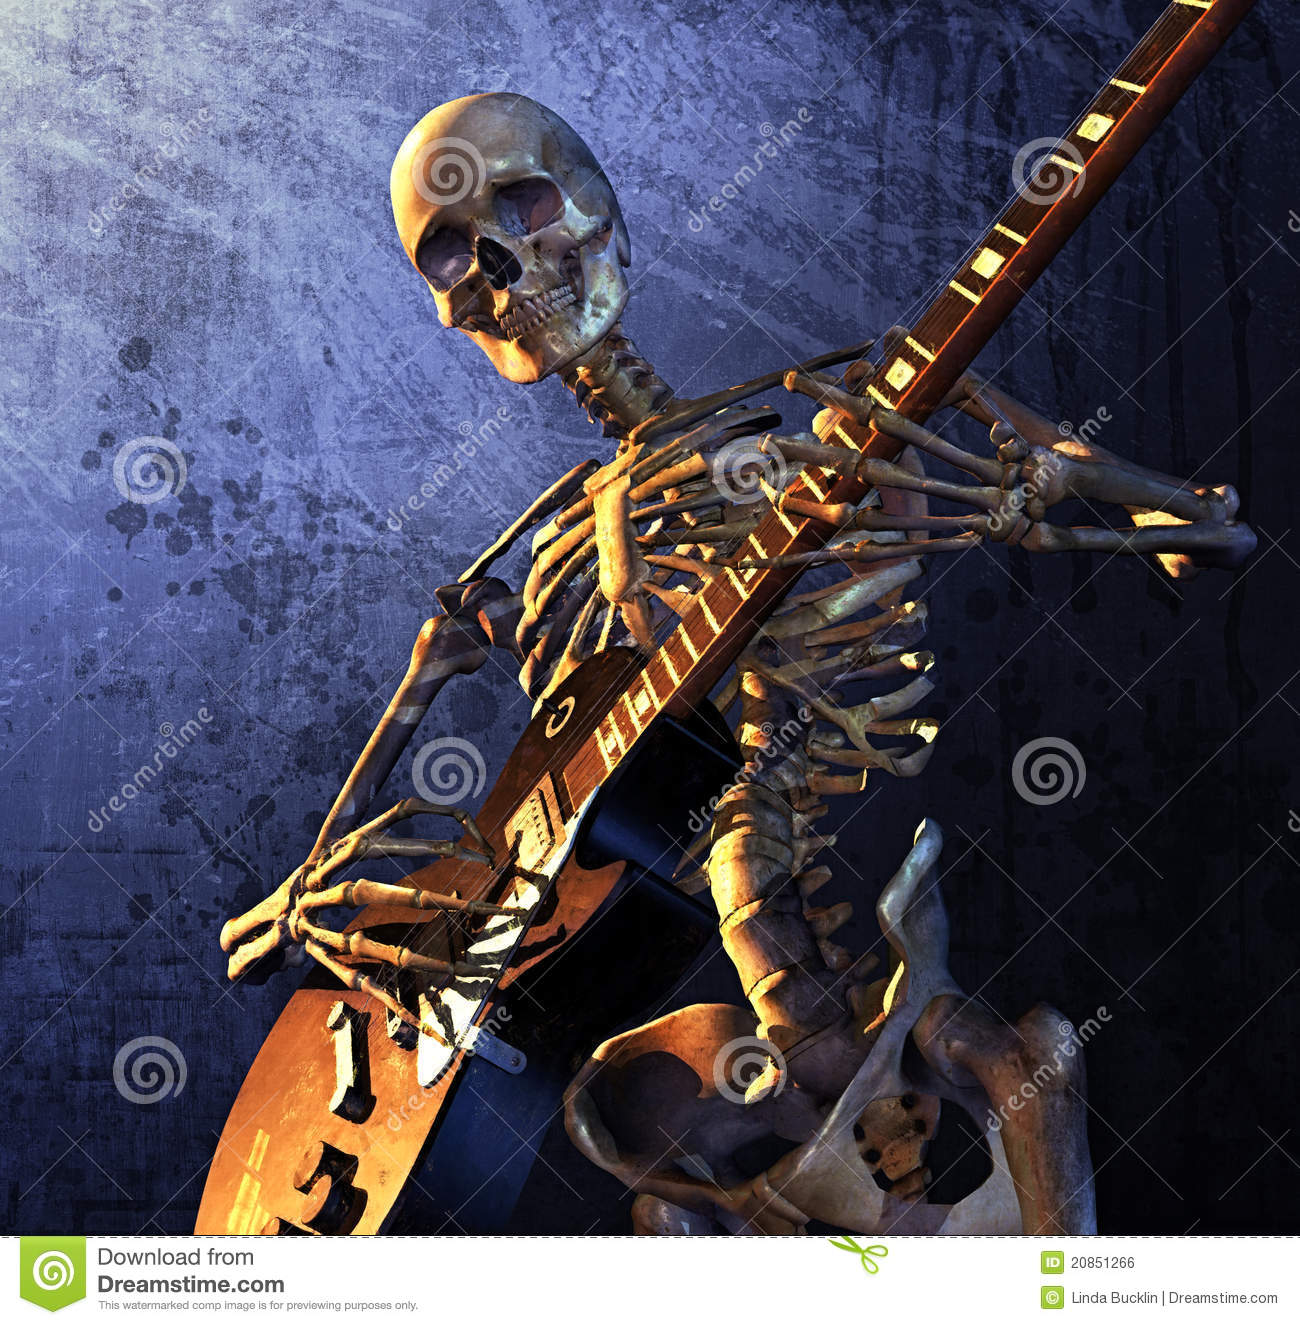 Free heavy metal music downloads from our music store.